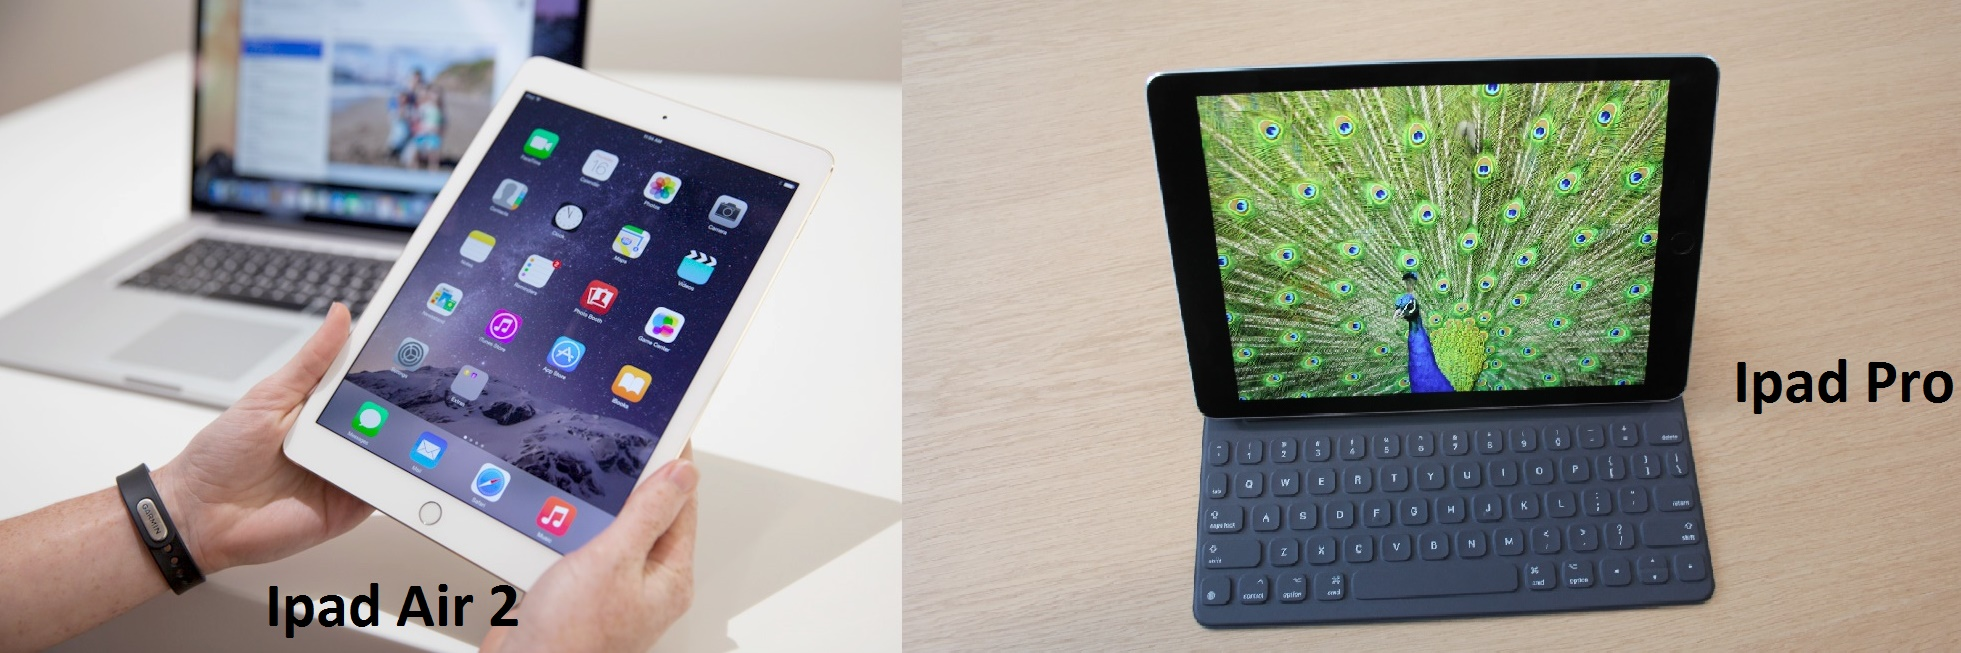 Apple Ipad Pro vs Apple Air 2 Full Specs Features